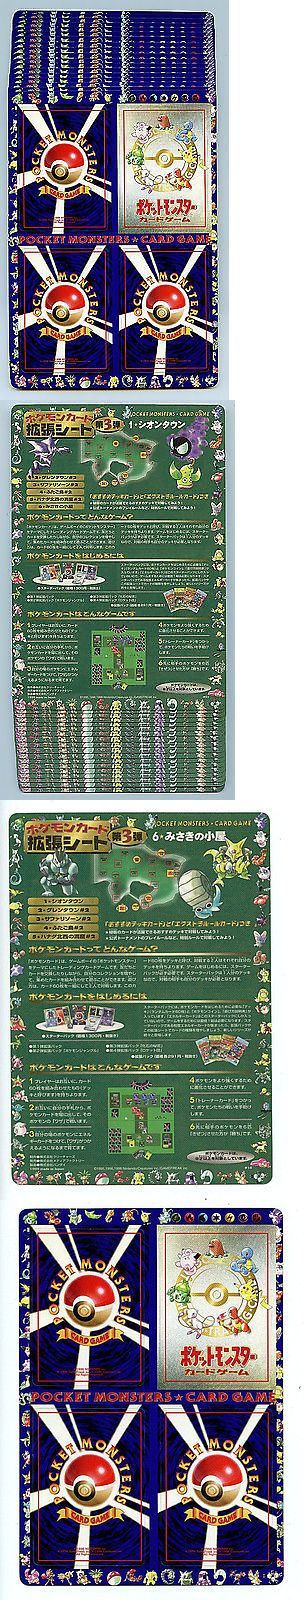 Pok mon Mixed Card Lots 104049: Japanese Pokemon Series #3 Vending Machine Card Sheets 1-18 Set Green 1998 H8 -> BUY IT NOW ONLY: $159.99 on eBay!